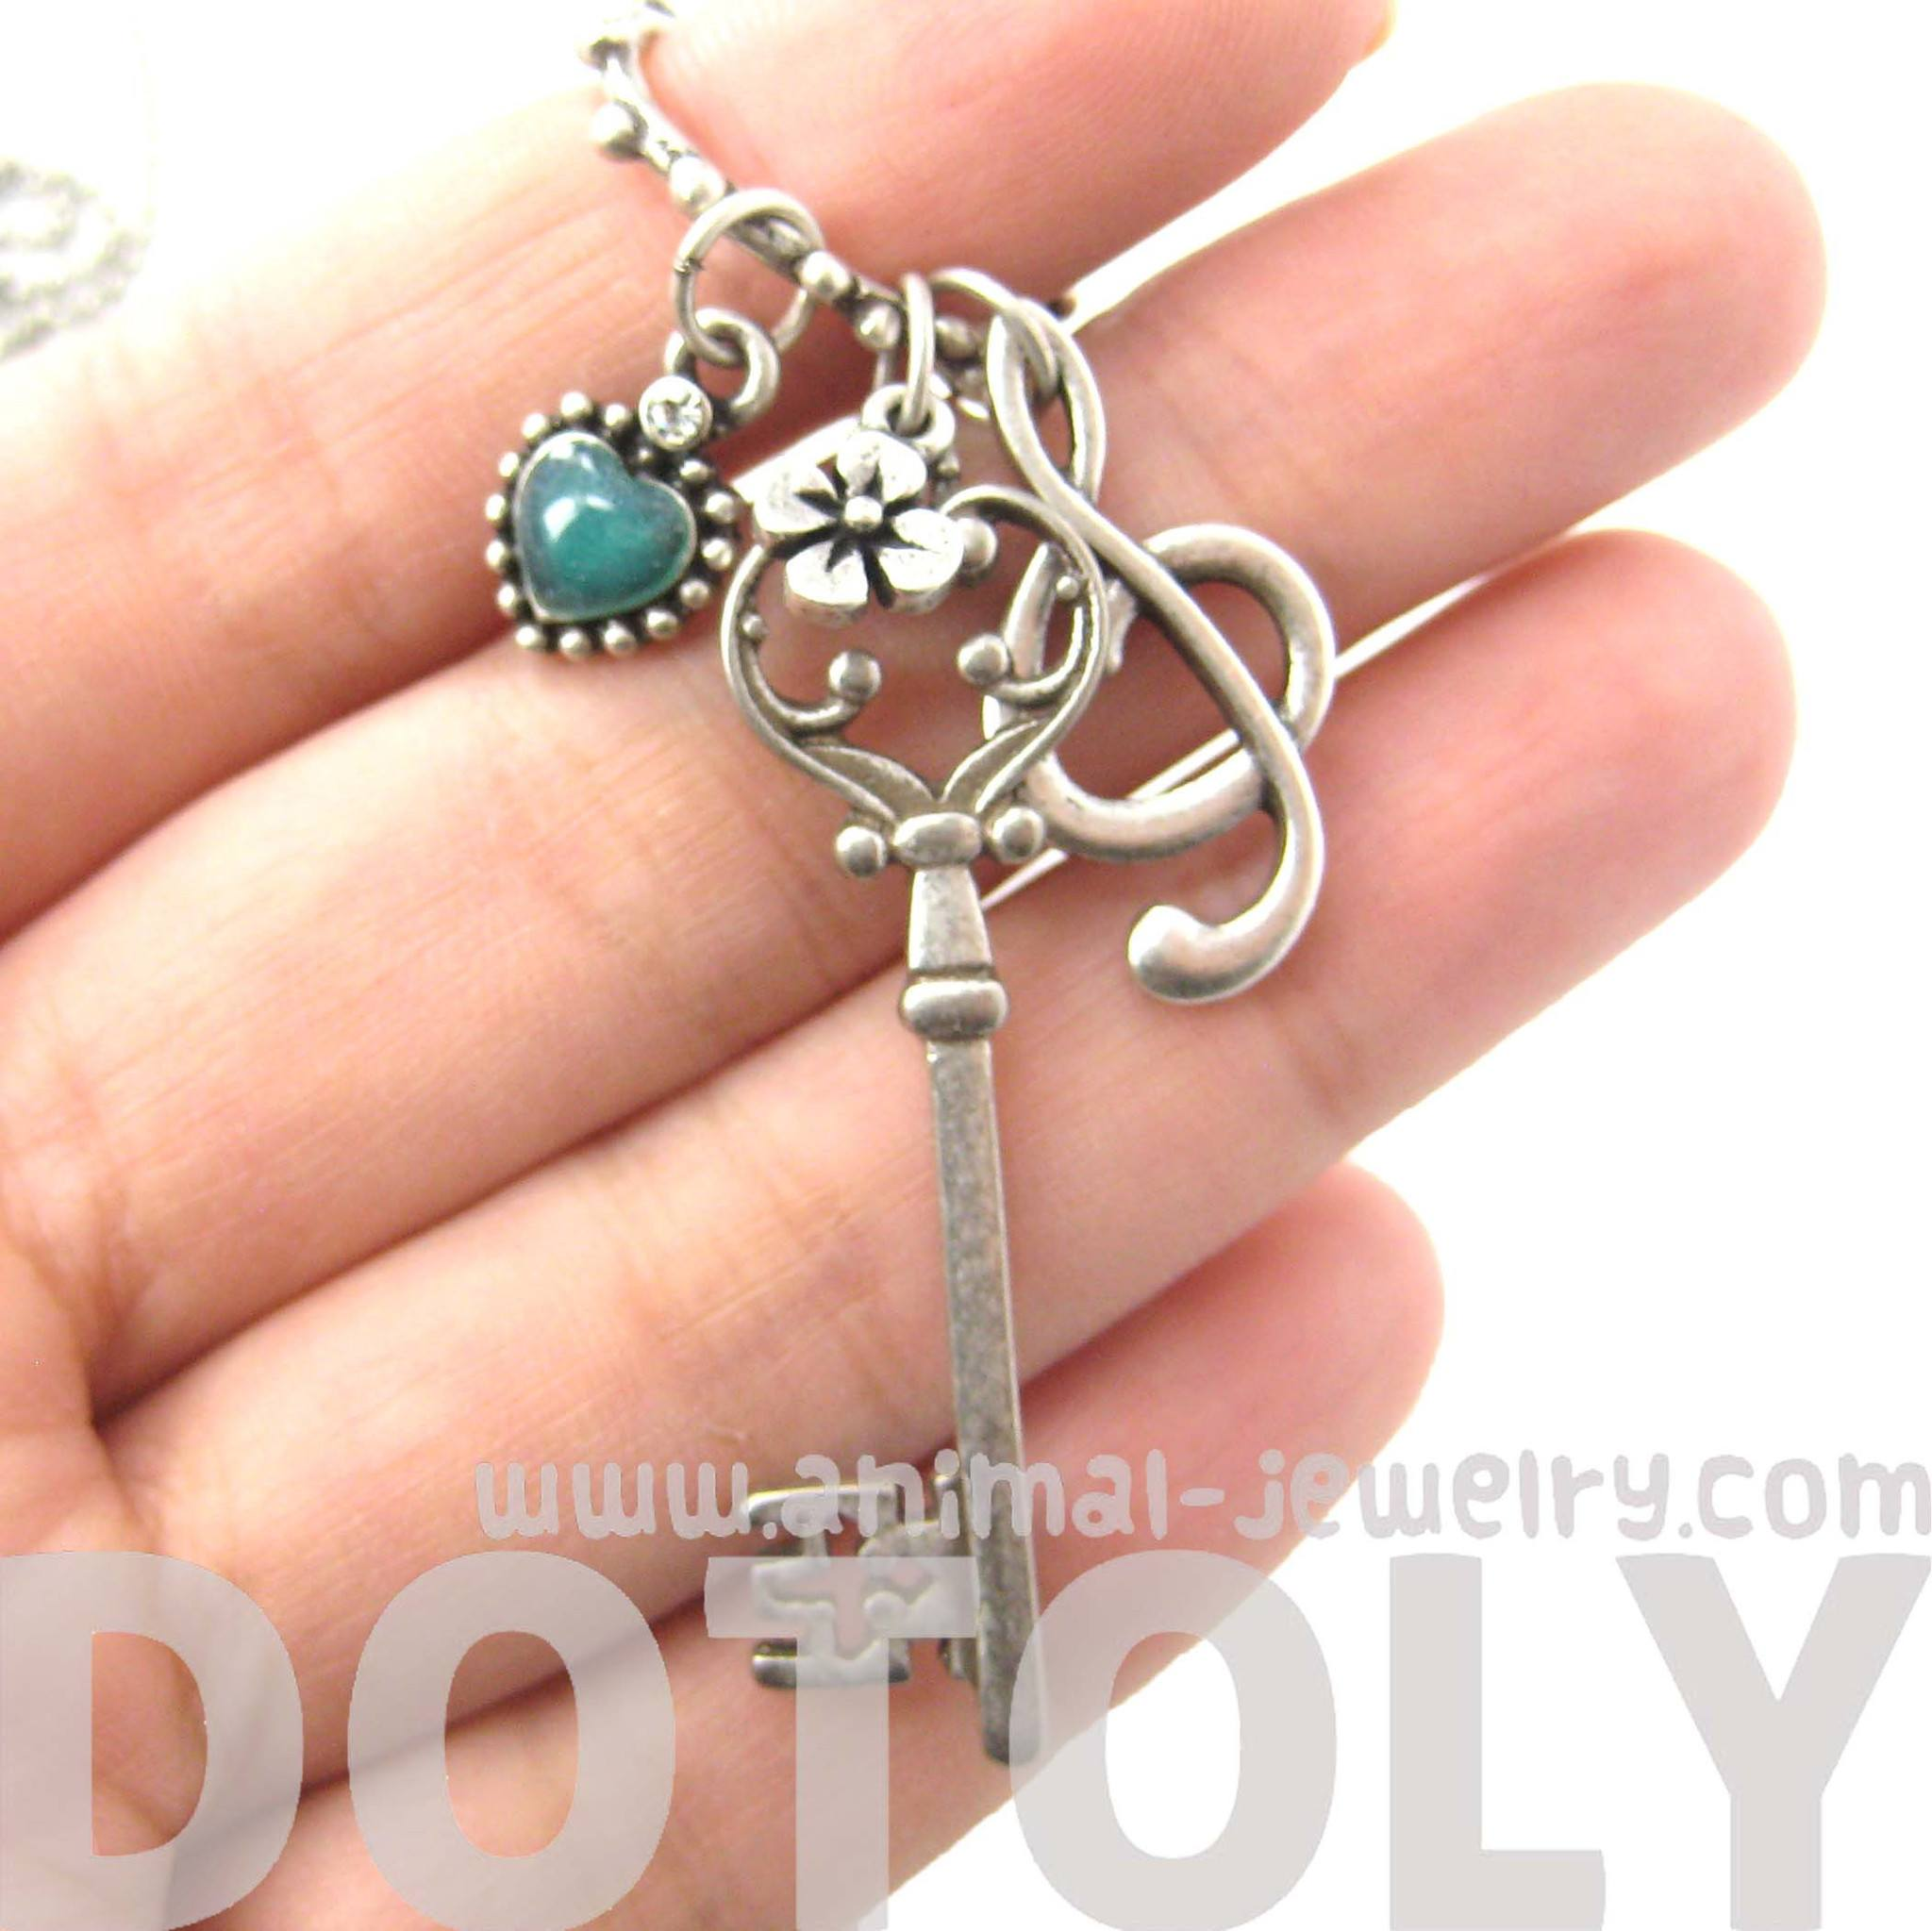 skeleton-key-heart-and-treble-clef-pendant-necklace-in-silver-dotoly